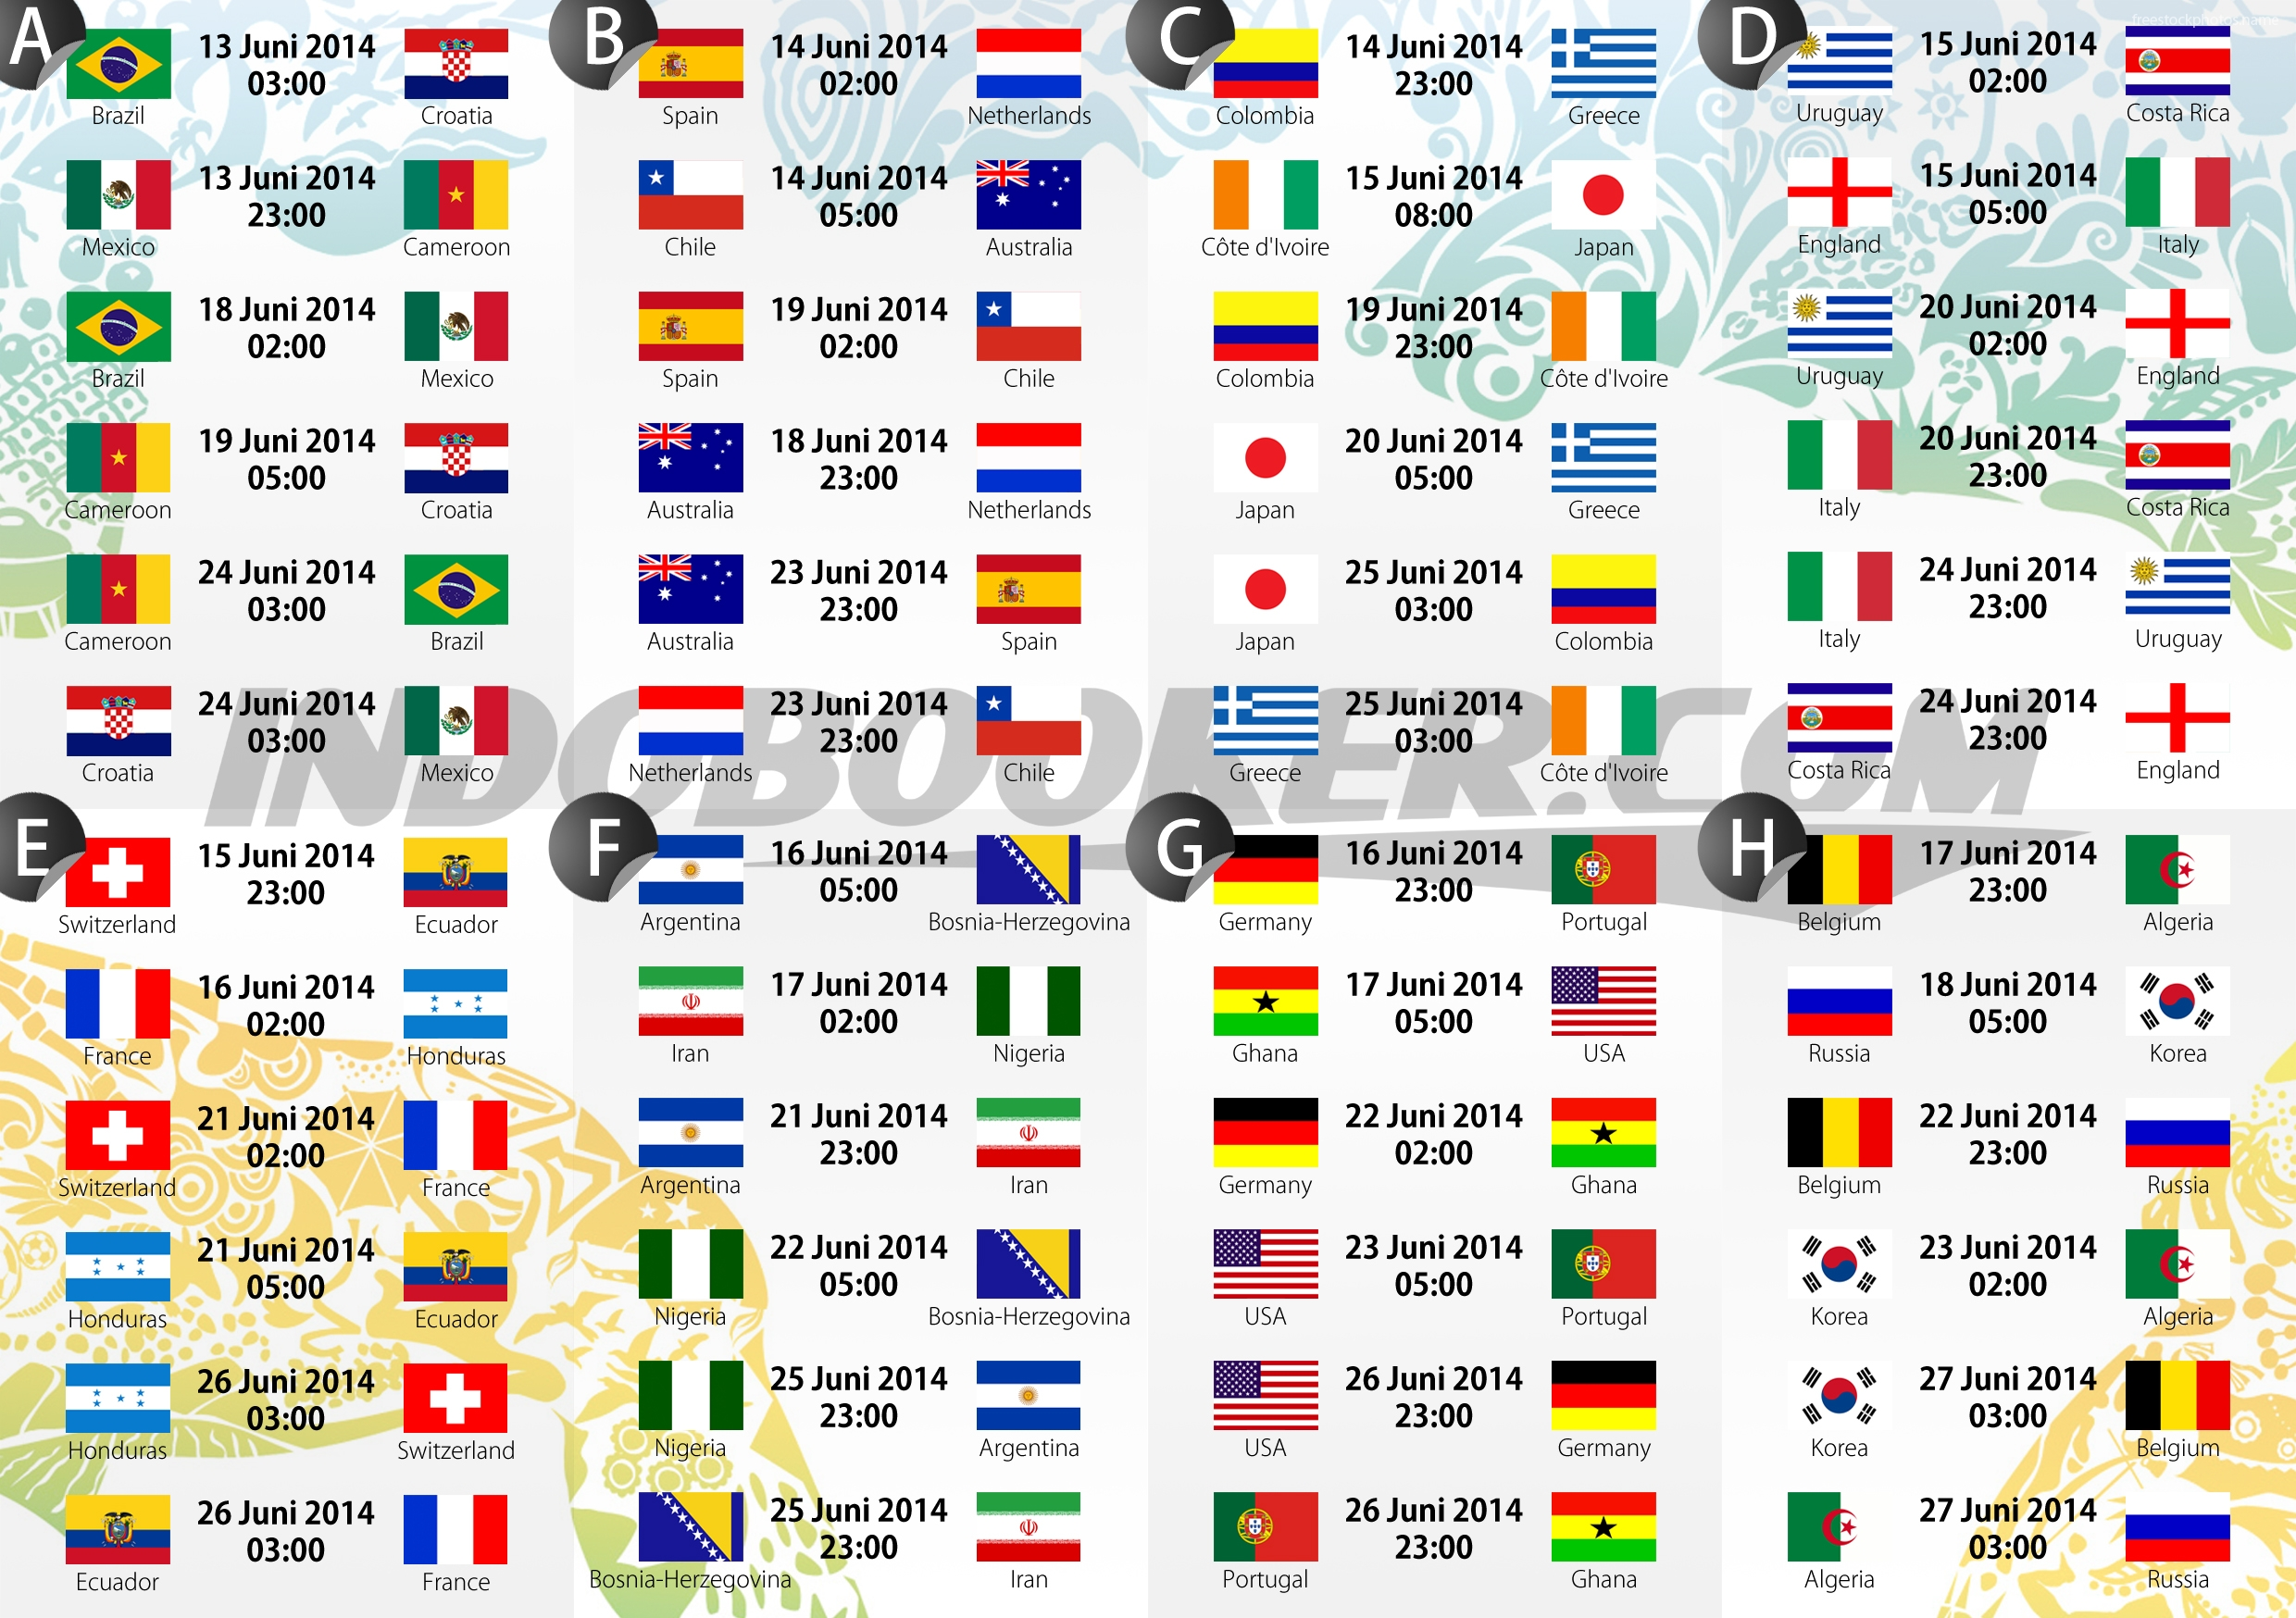 FIFA World Cup 2014 Groups and Schedule